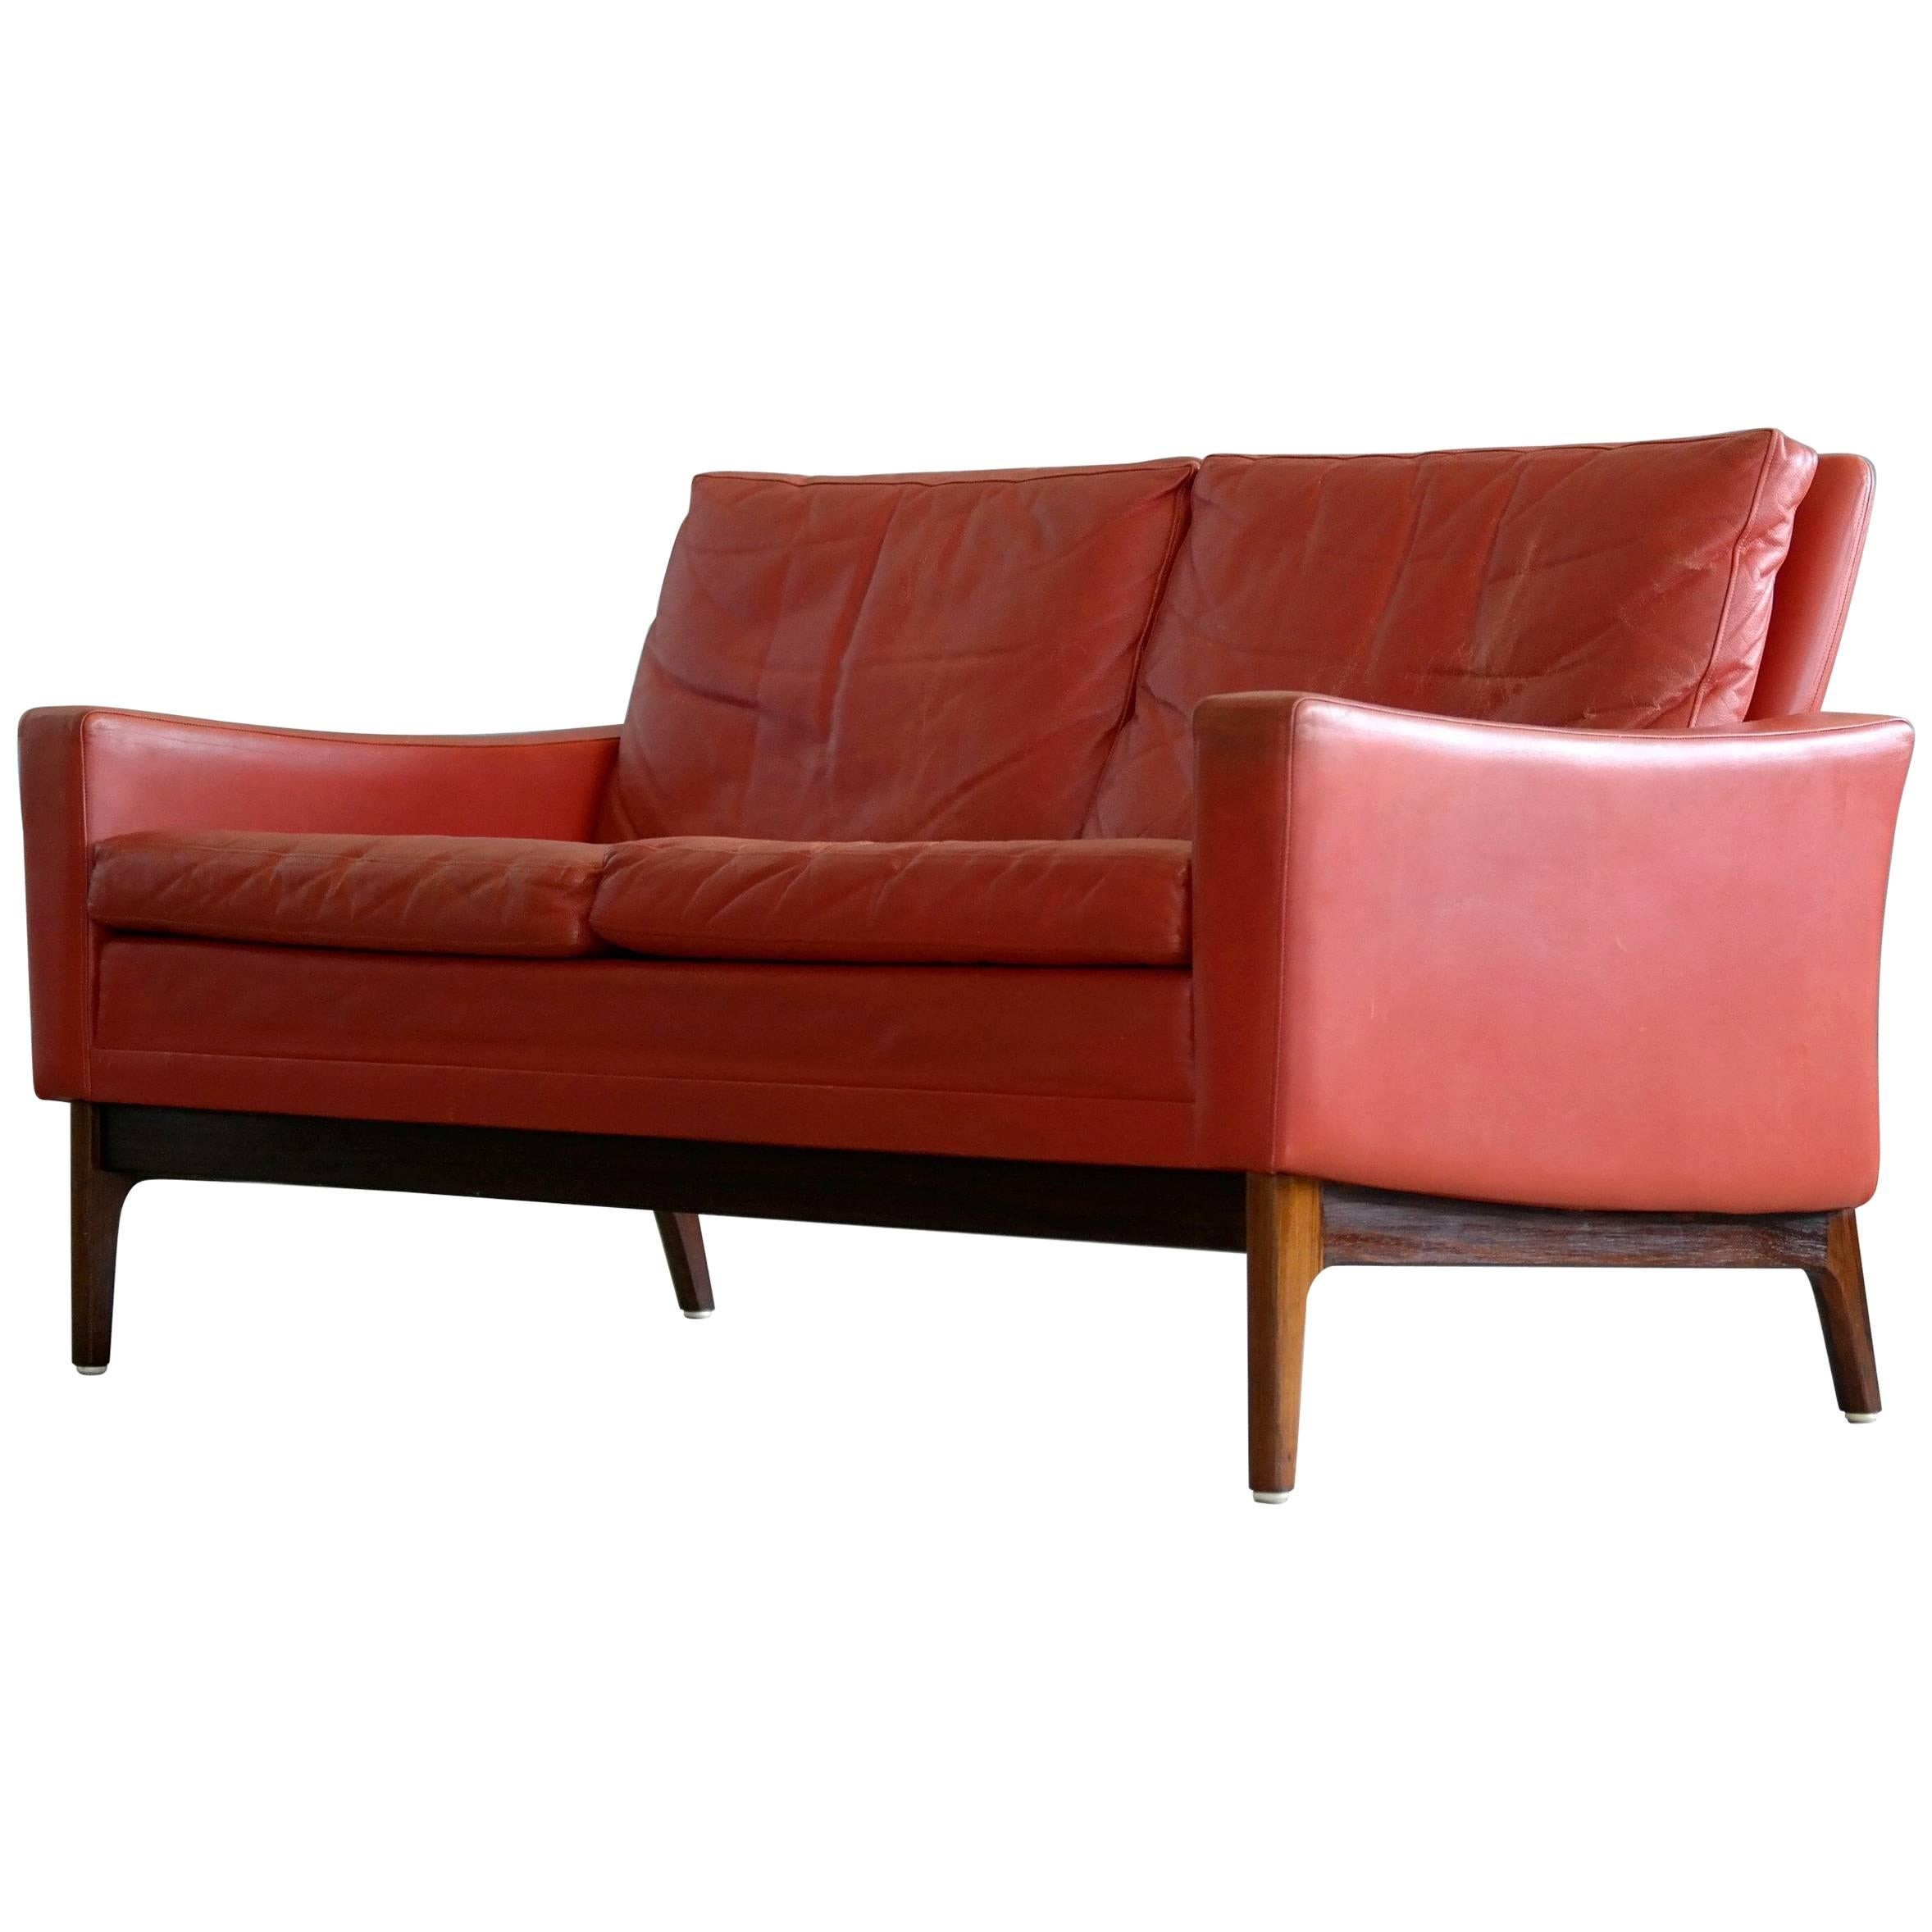 Charmant Classic Danish Mid Century Modern Sofa In Red Leather And Rosewood Base